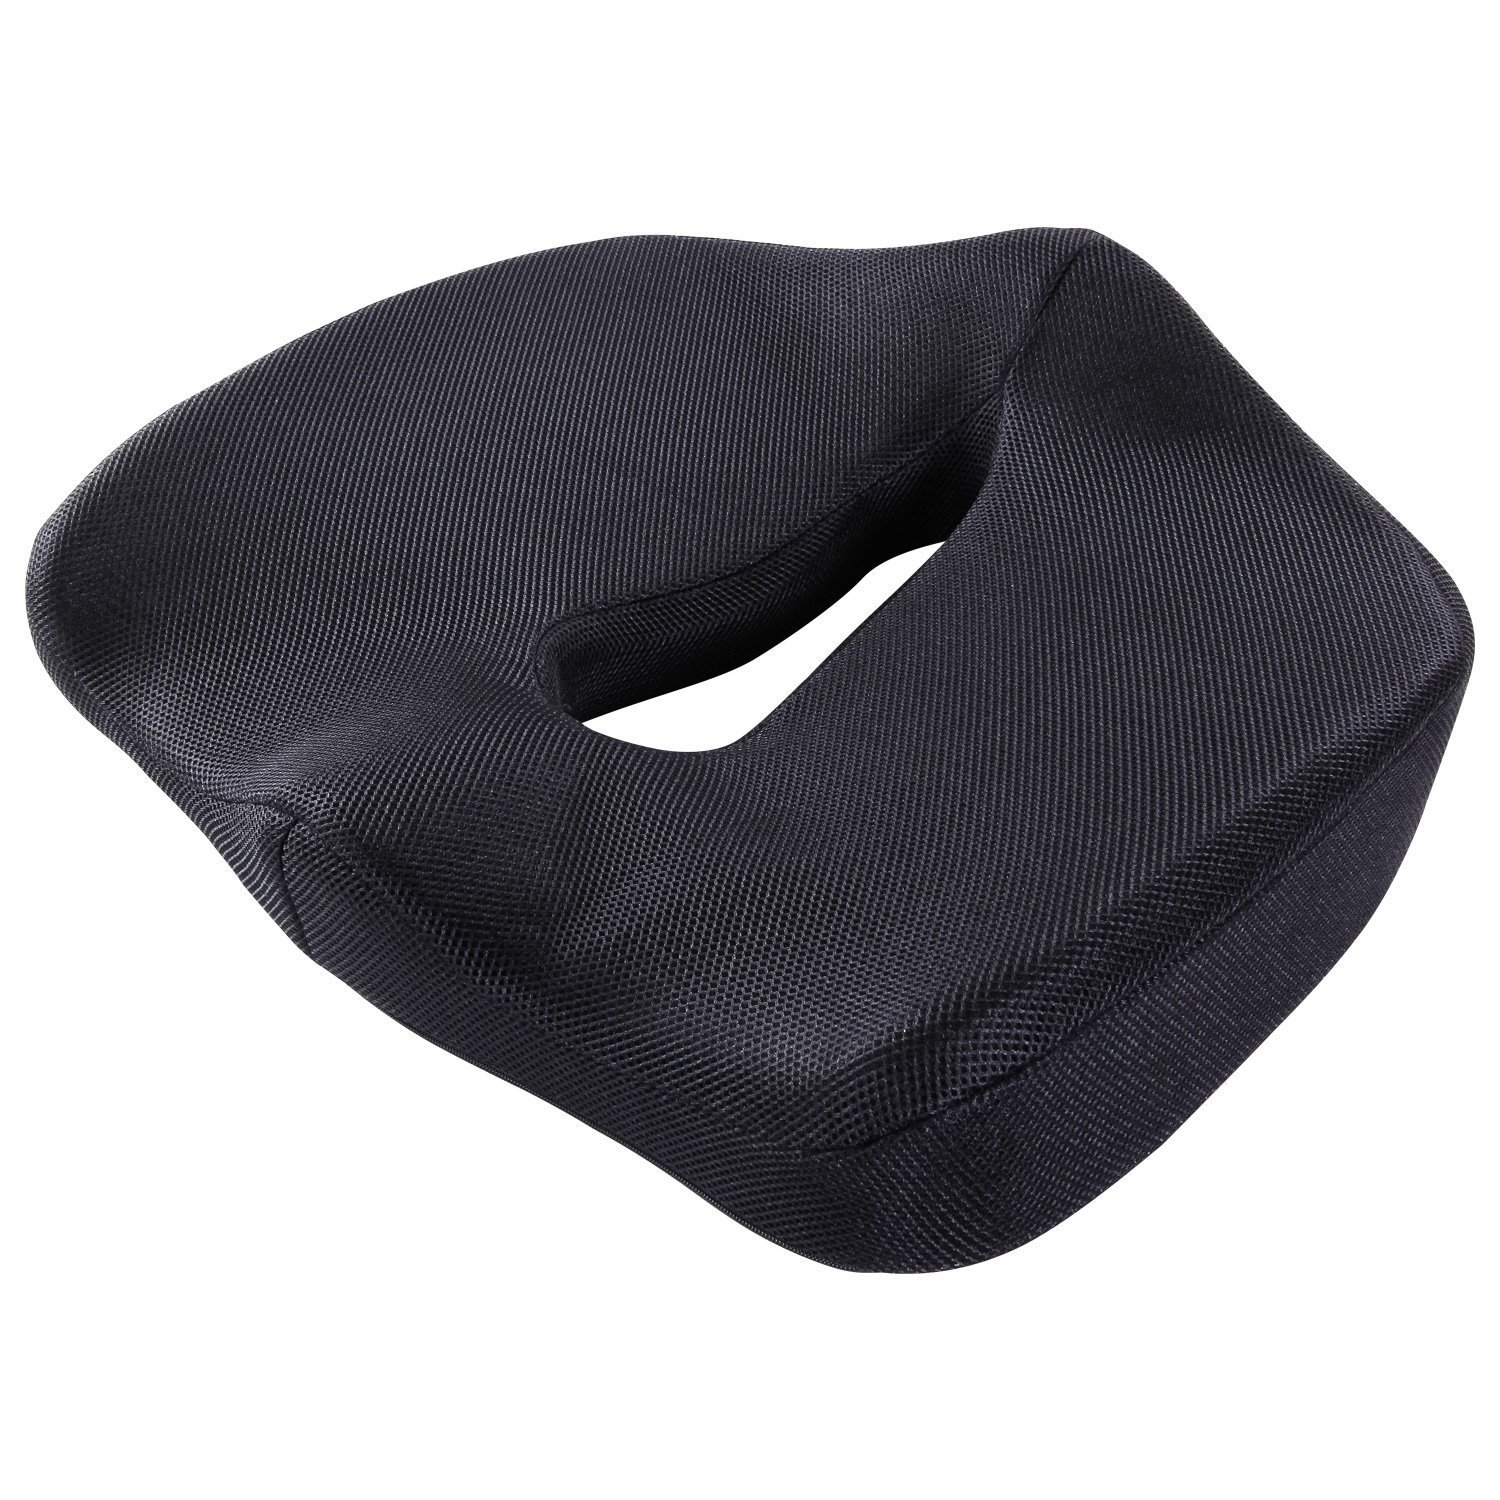 Antaprcis Coccyx Orthopedic Seat Cushion with Ergonomic Memory Foam , Breathable Mesh Cover for Coccyx Relieve Back Sciatica and Tailbone Pain- - Office Chair and Car Seat Cushion - Black by Antaprcis